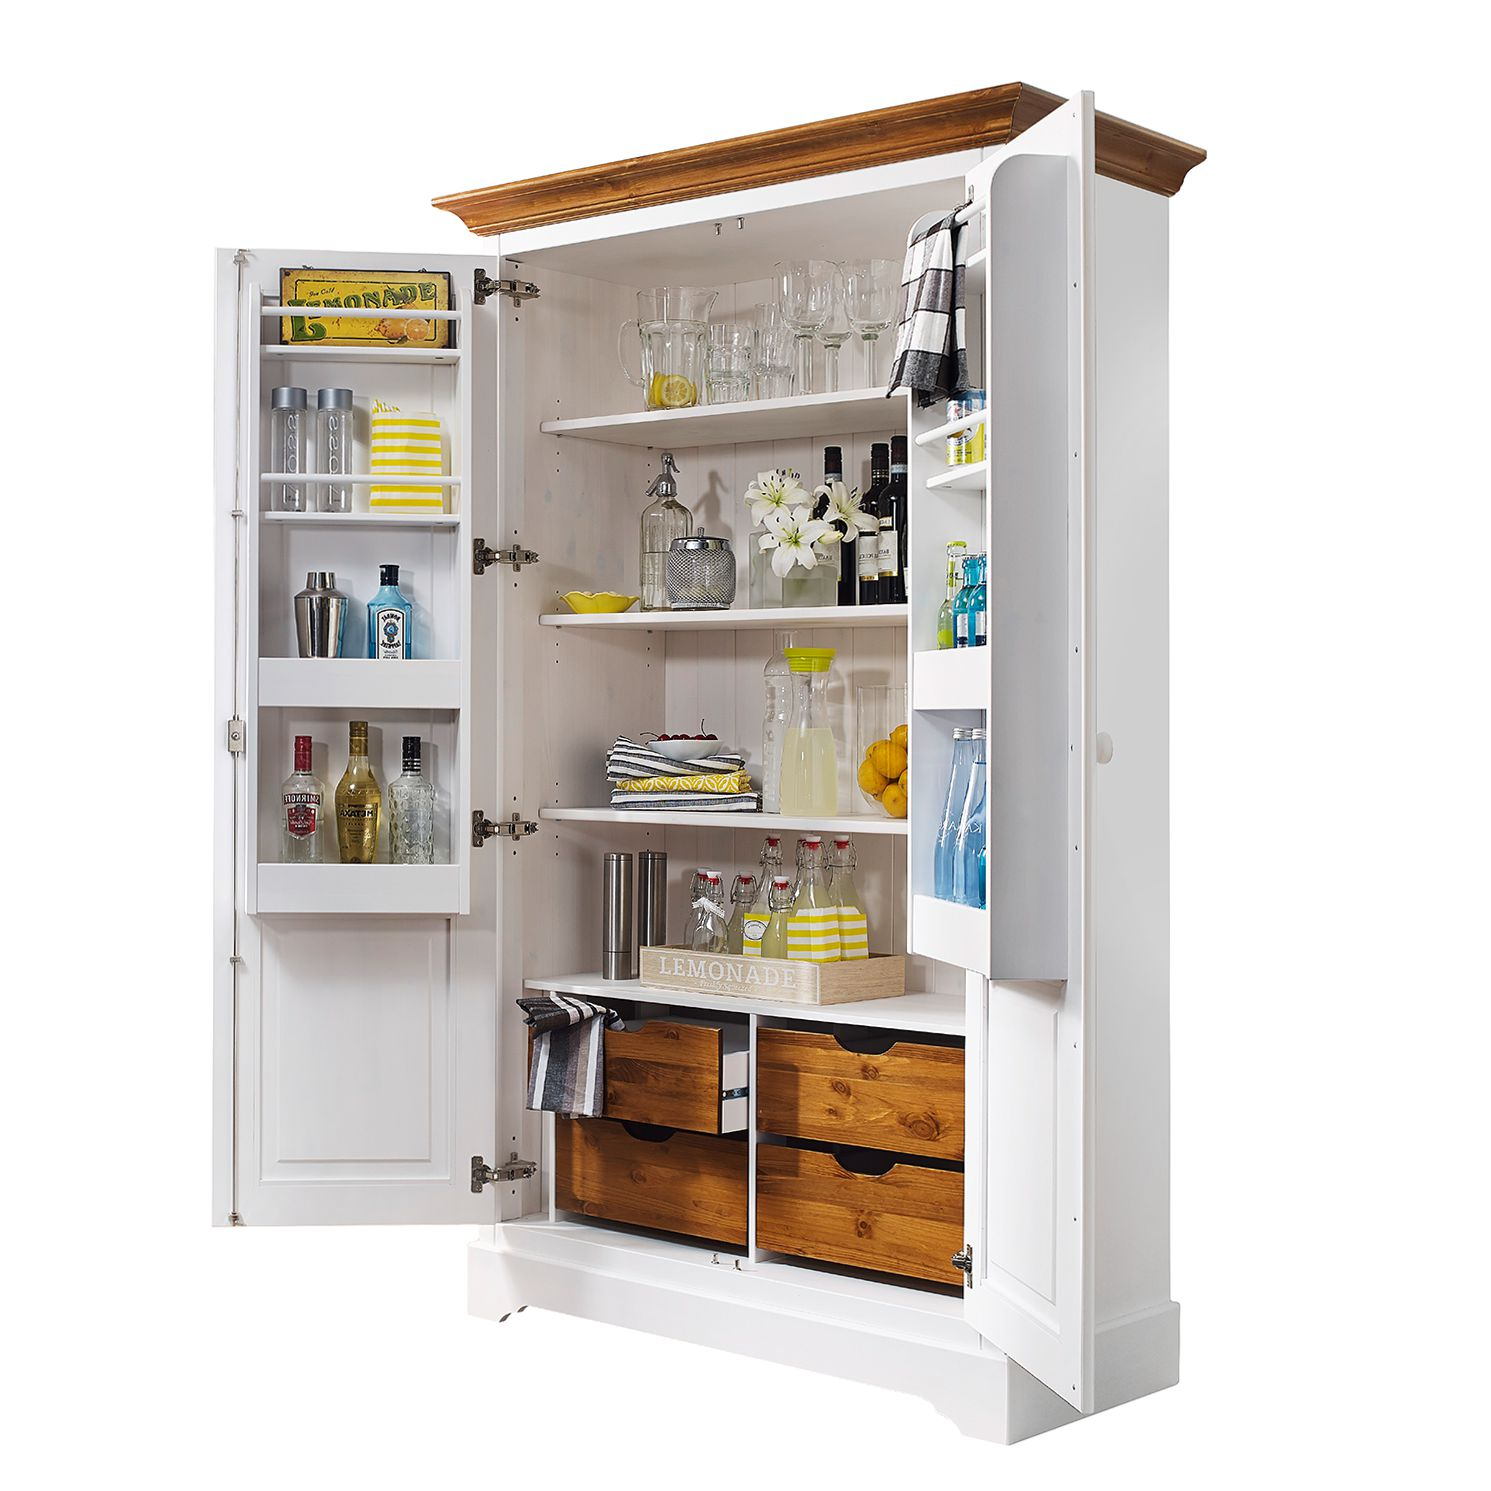 vente armoire pharmacie tritoo maison et jardin. Black Bedroom Furniture Sets. Home Design Ideas